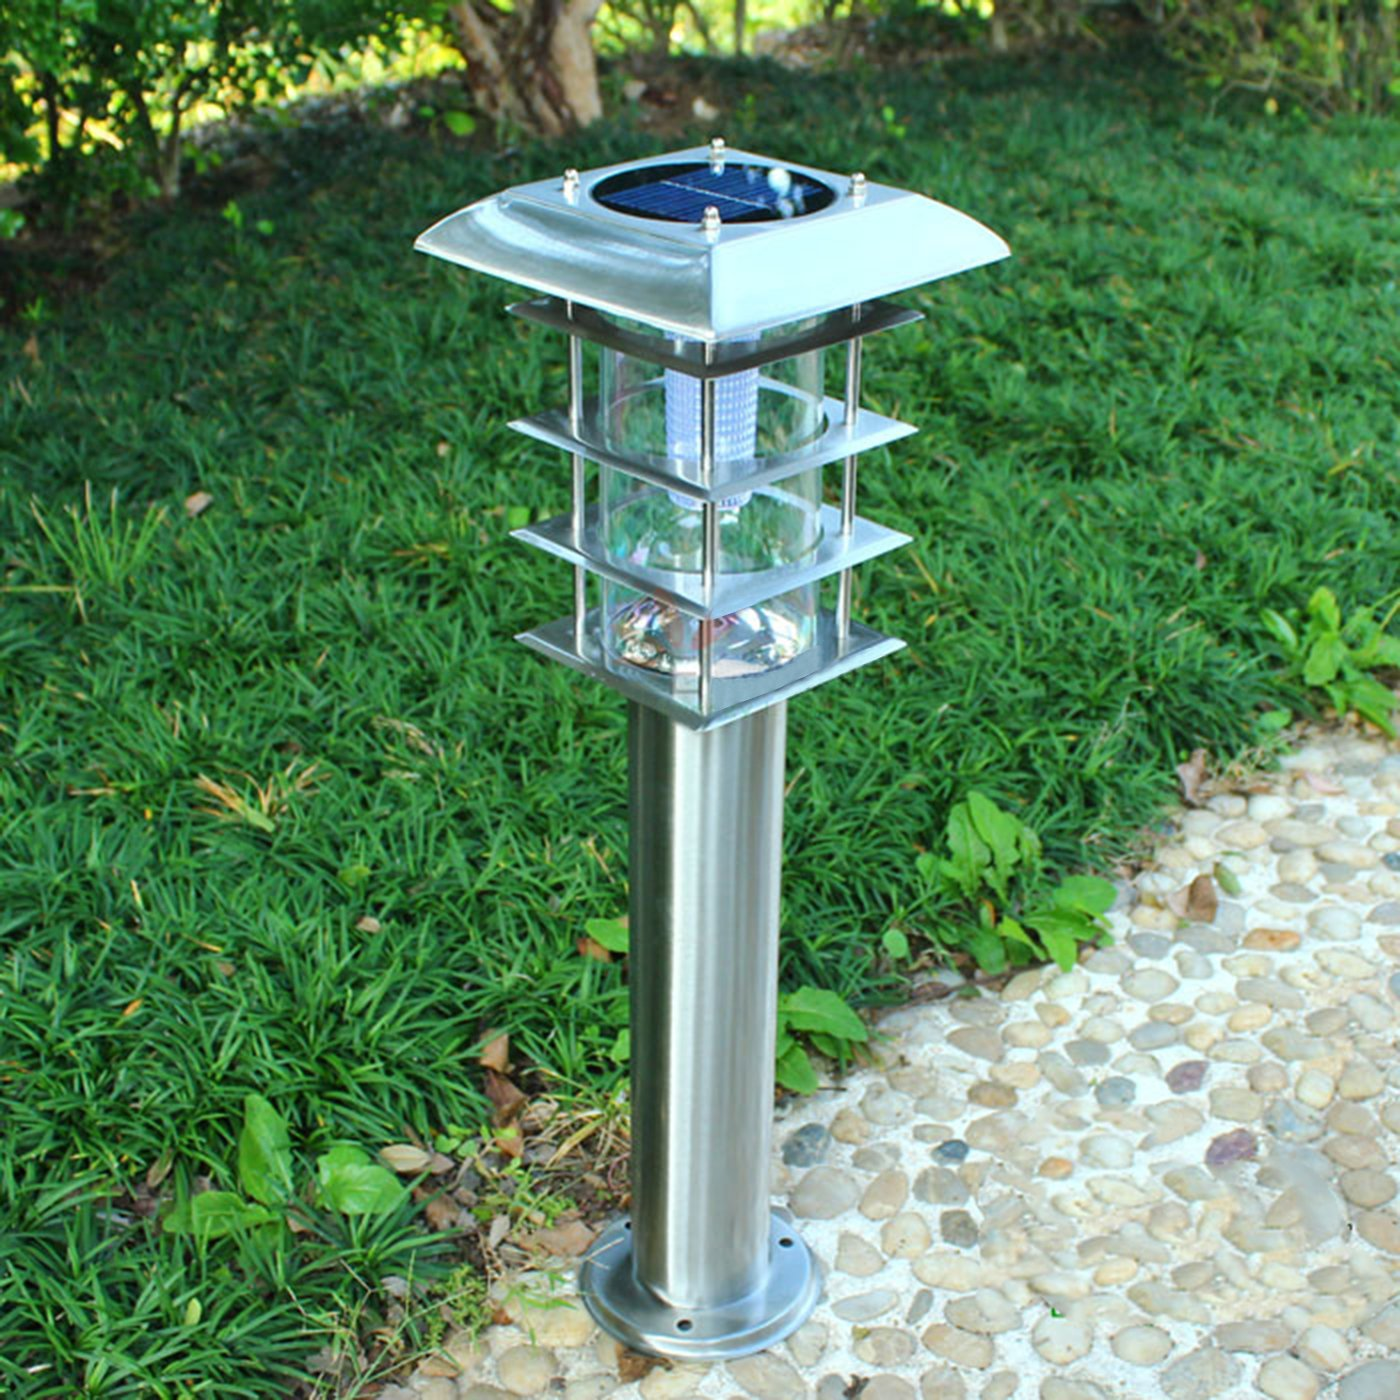 Solar Powered LED Outdoor Garden Landscape Light- Waterproof Garden Pathway Lights for Outdoor, Yard, Driveway, Lawn -Stainless Steel,Silver ,Square